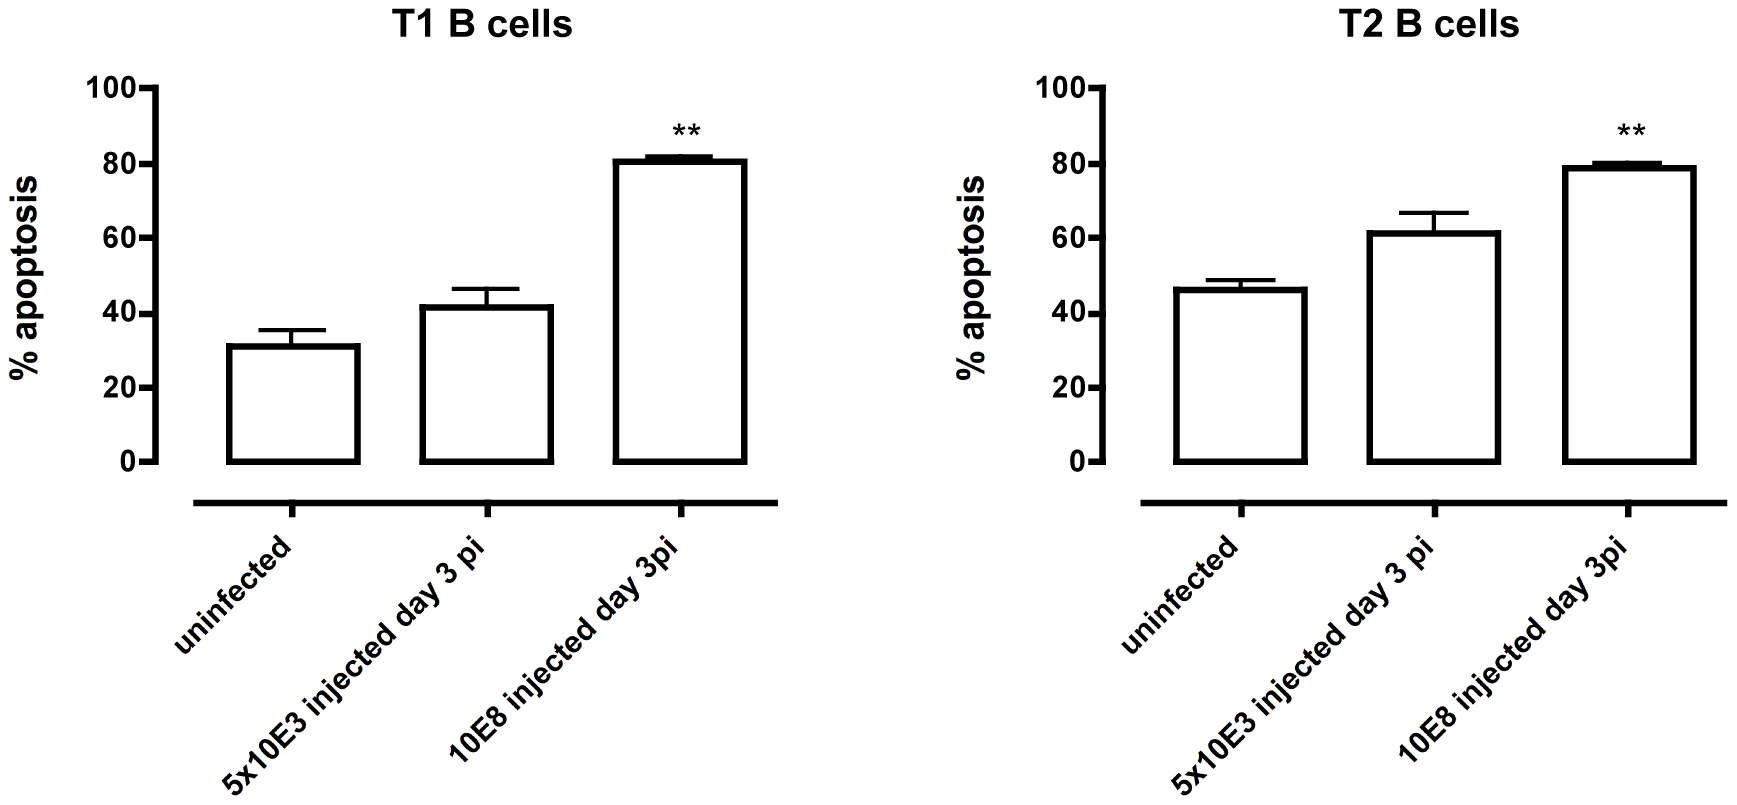 Apoptosis of transitional B cells <i>in vivo.</i>